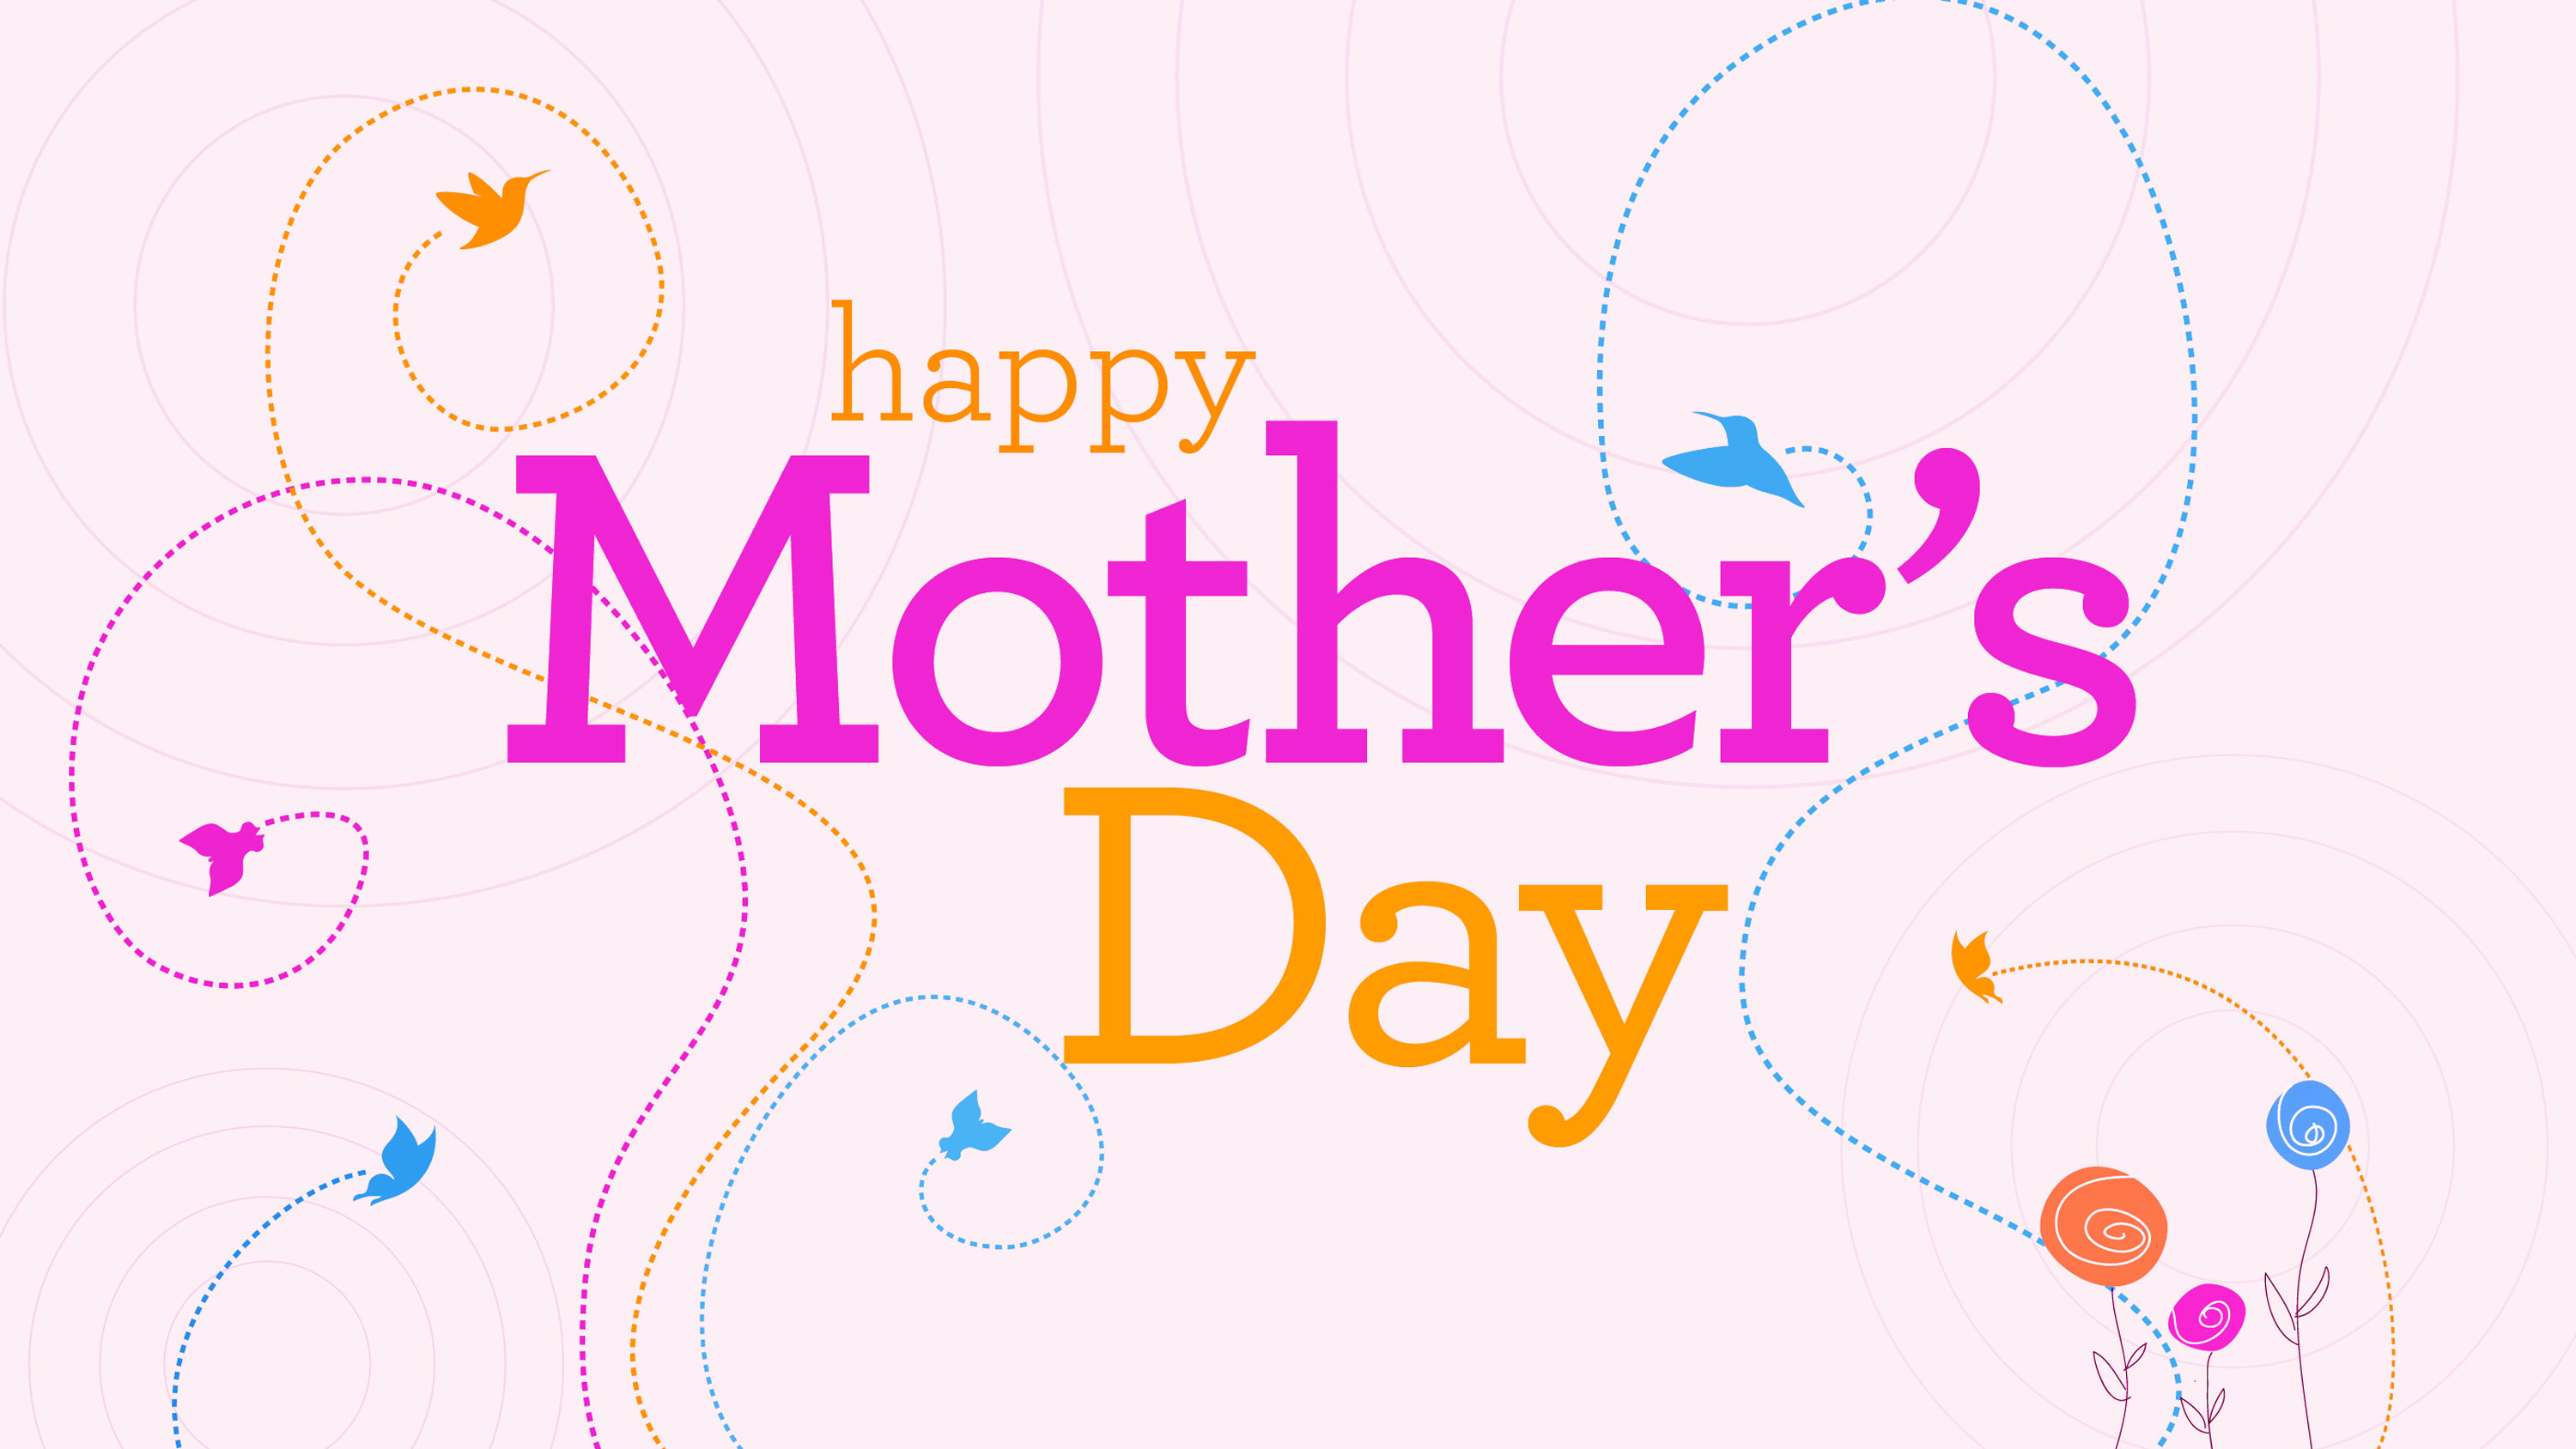 Happy Mothers Day Wallpaper HD 2 3000x1688